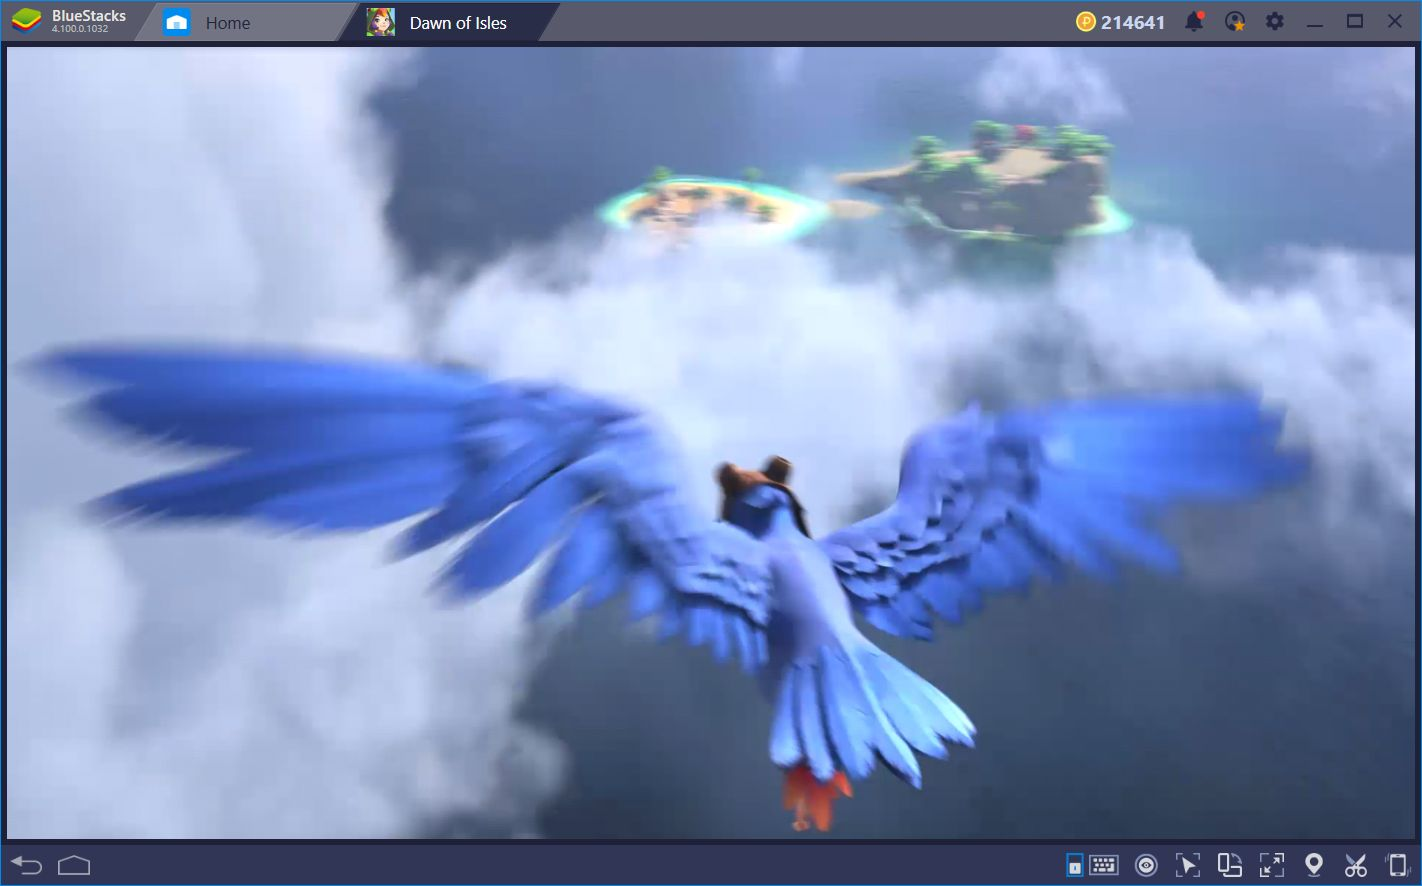 Fight, Craft, and Save the World in Dawn of Isles With BlueStacks